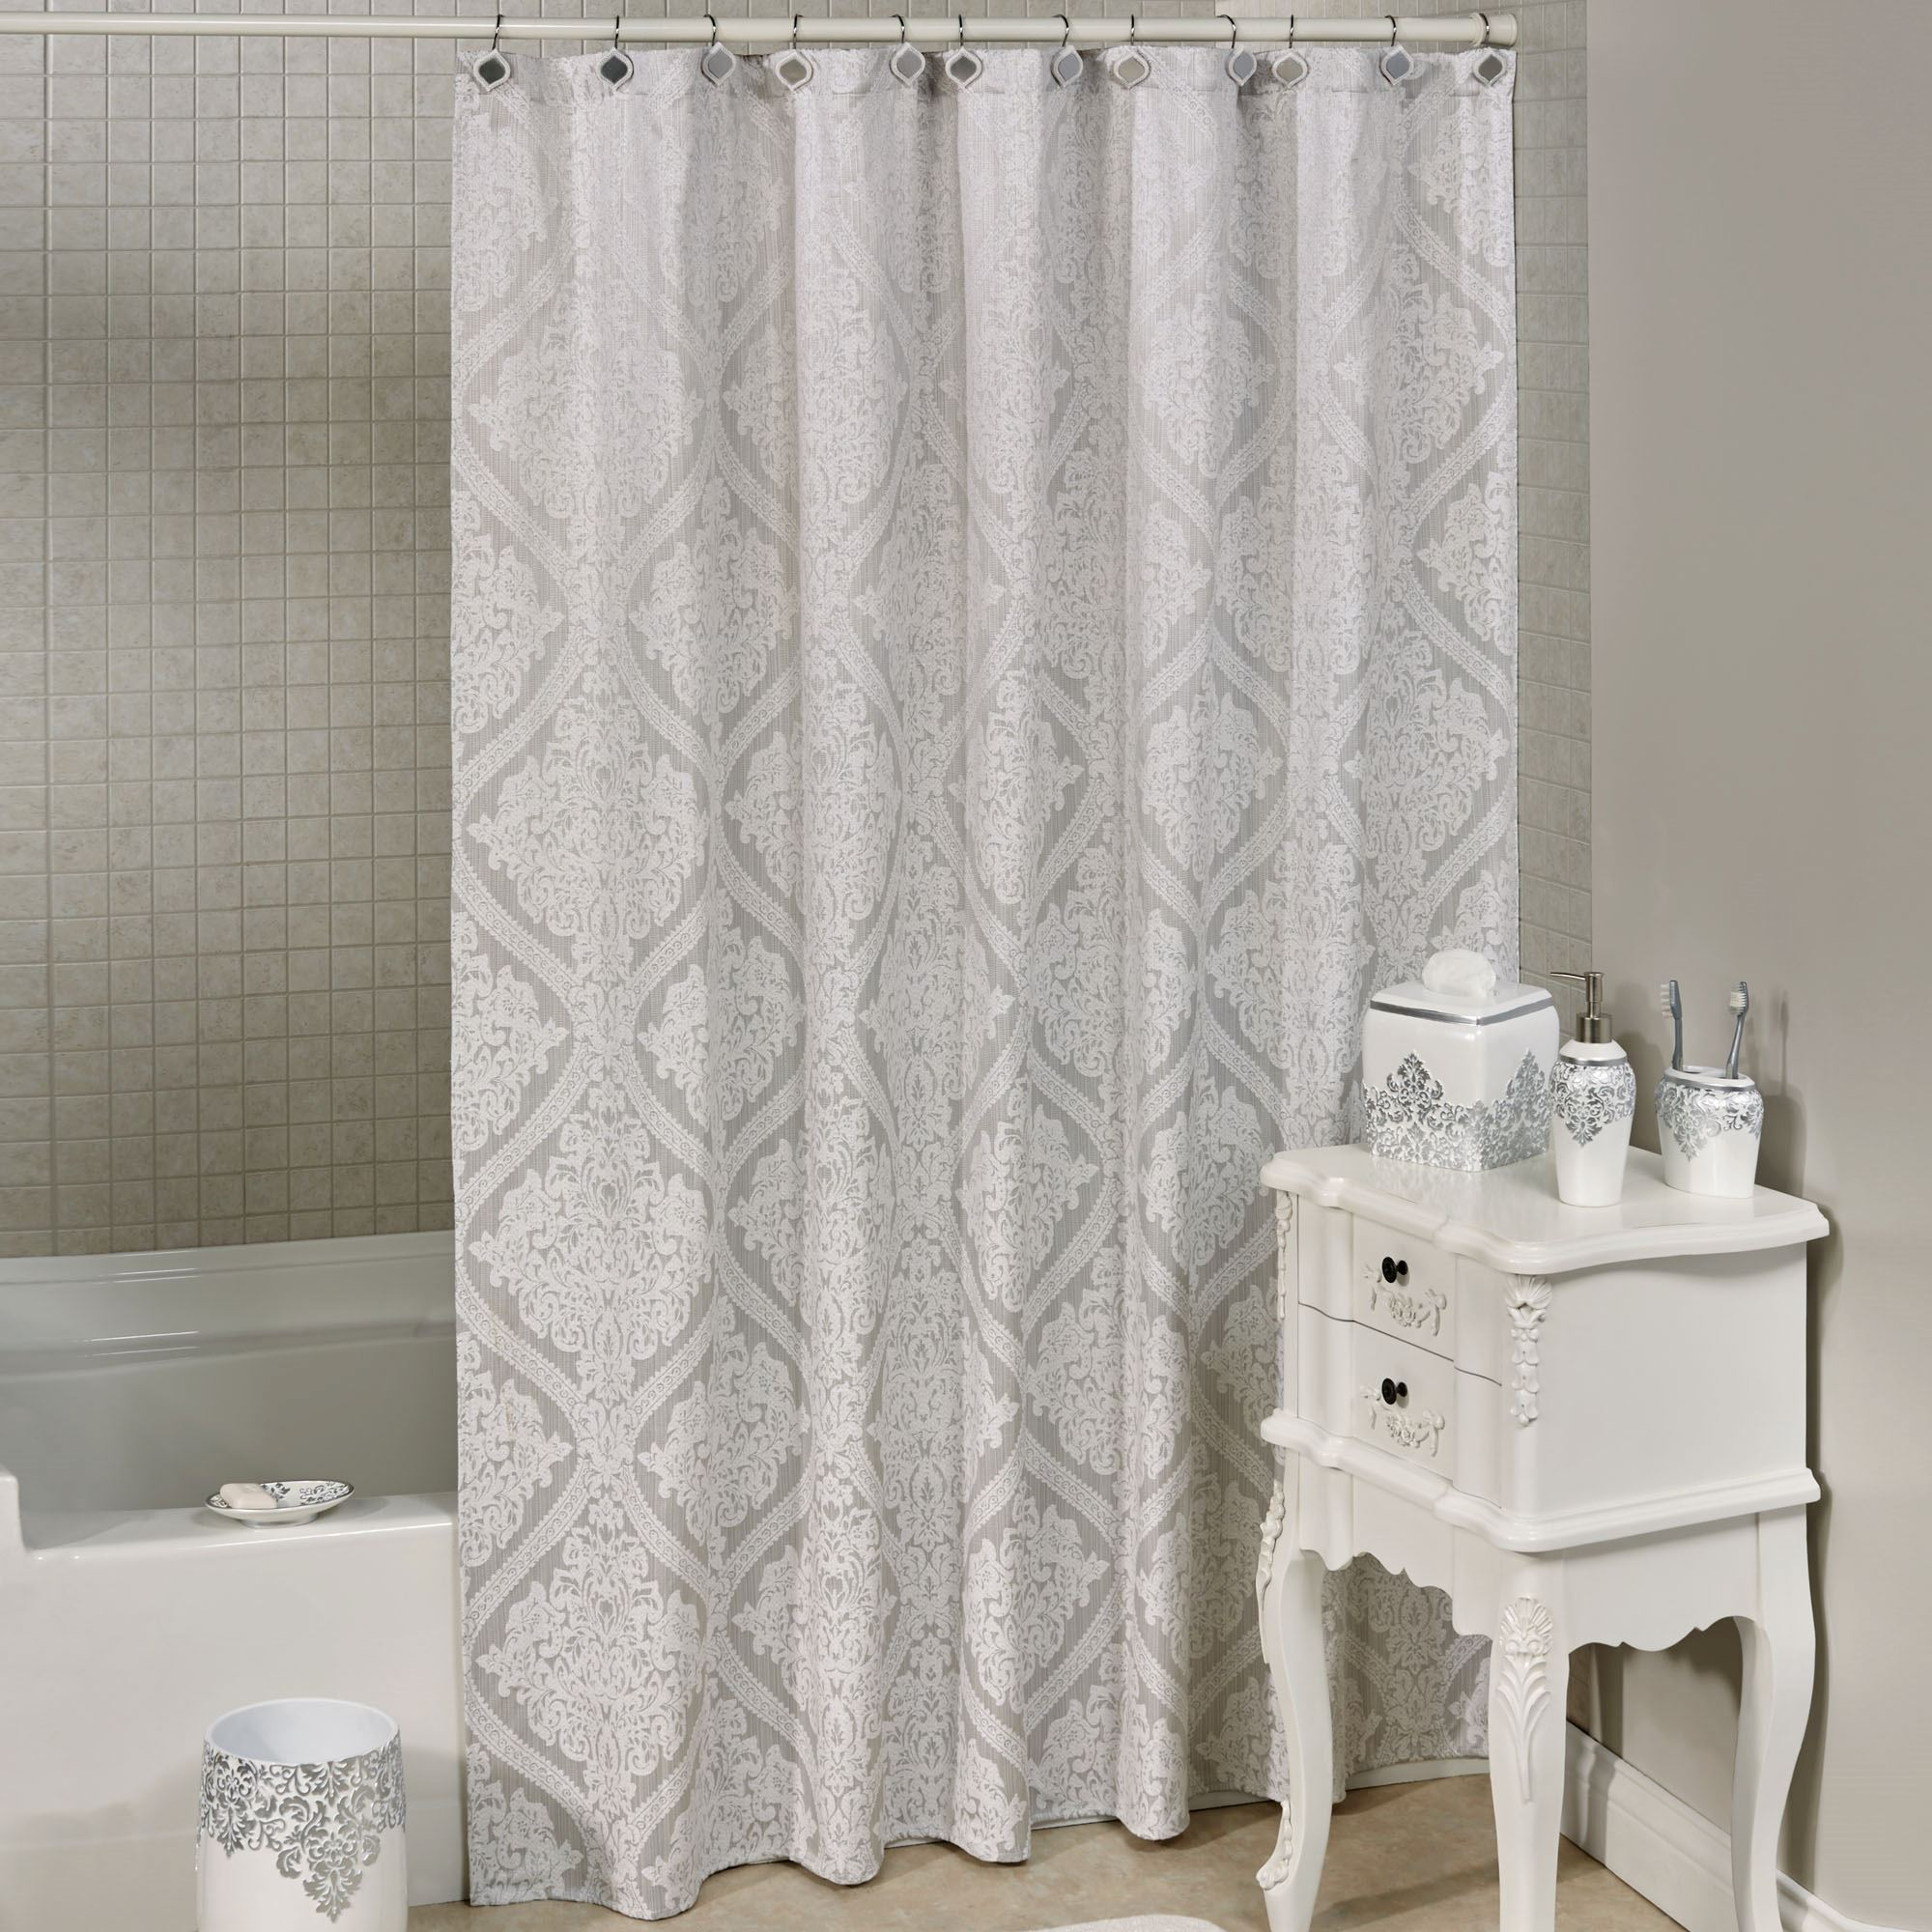 white and silver shower curtain. Ettore Shower Curtain Silver 70 x 72 Damask with Liner